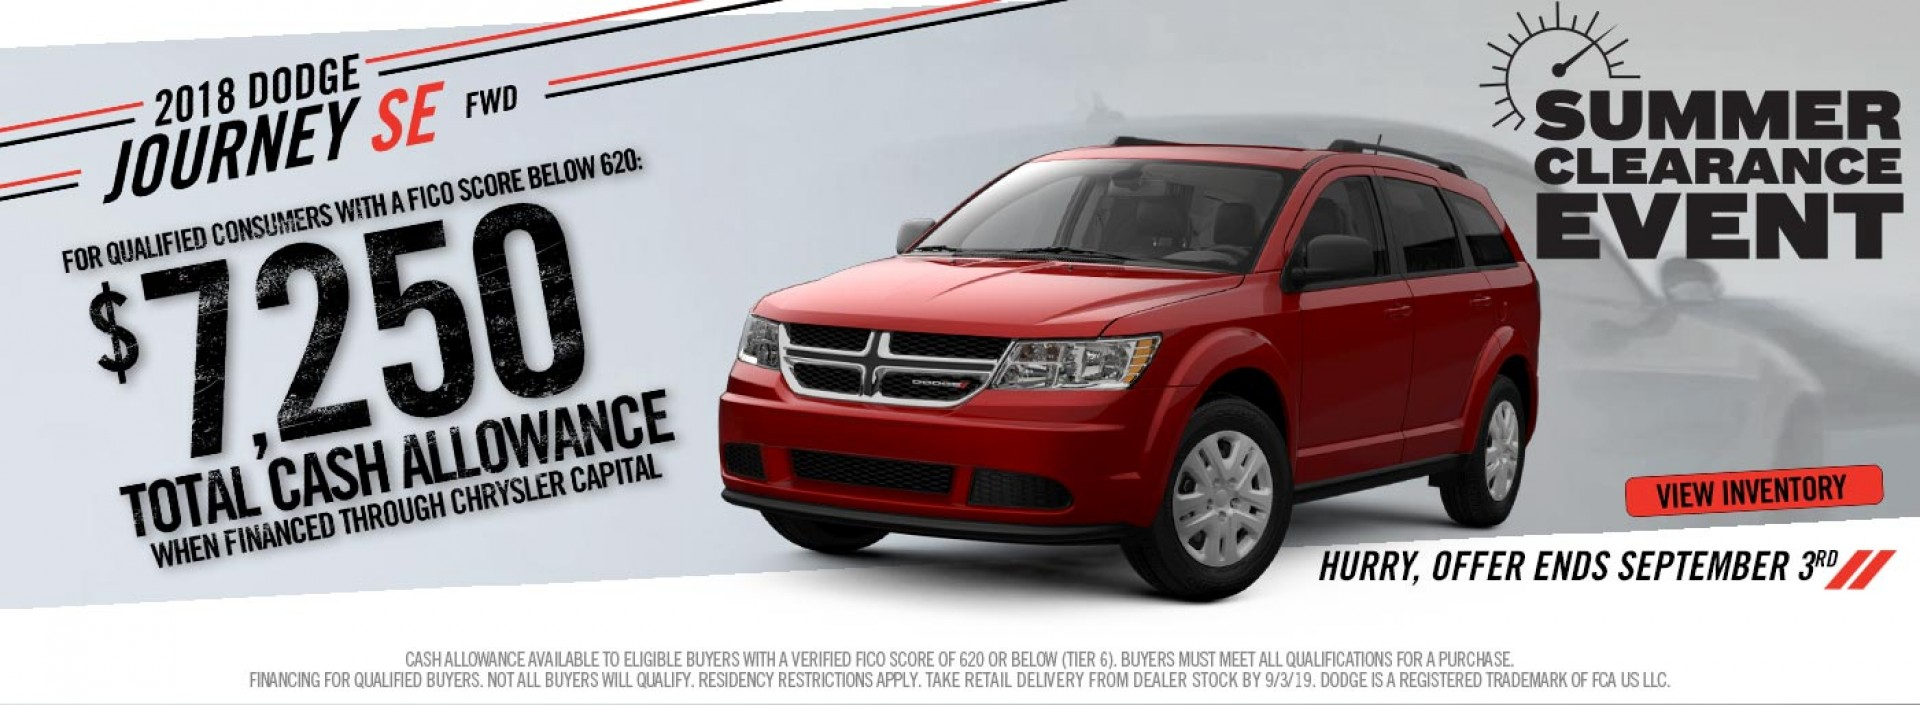 NonTX Dodge Journey Subprime